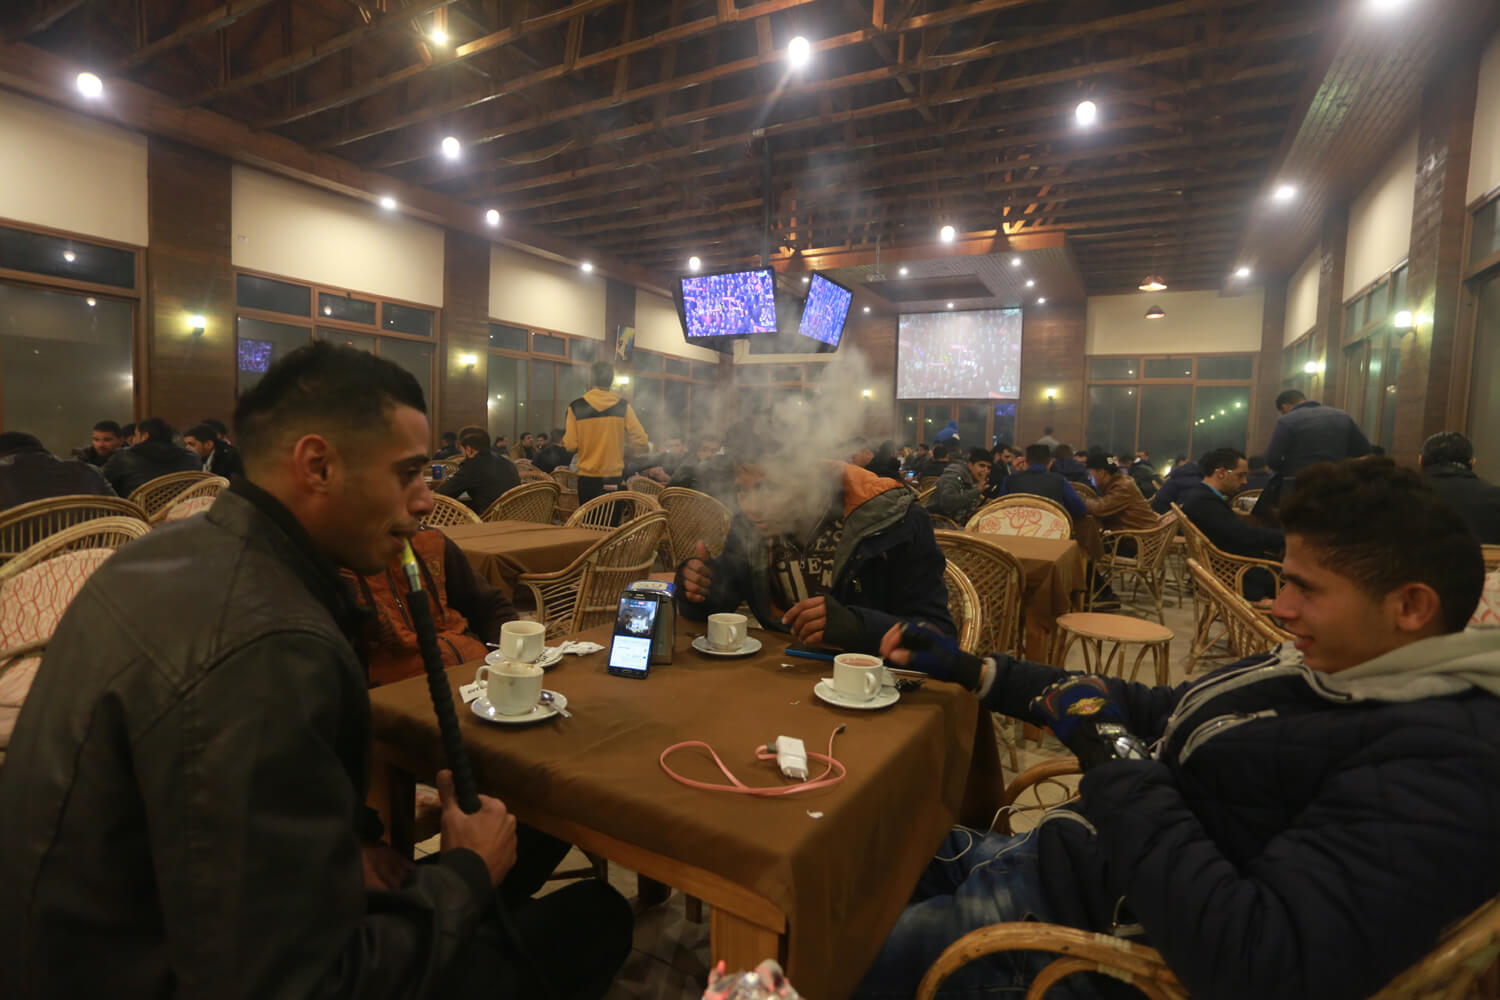 Youths spend some quality time in a coffee shop (Photo: Mohammed Asad)